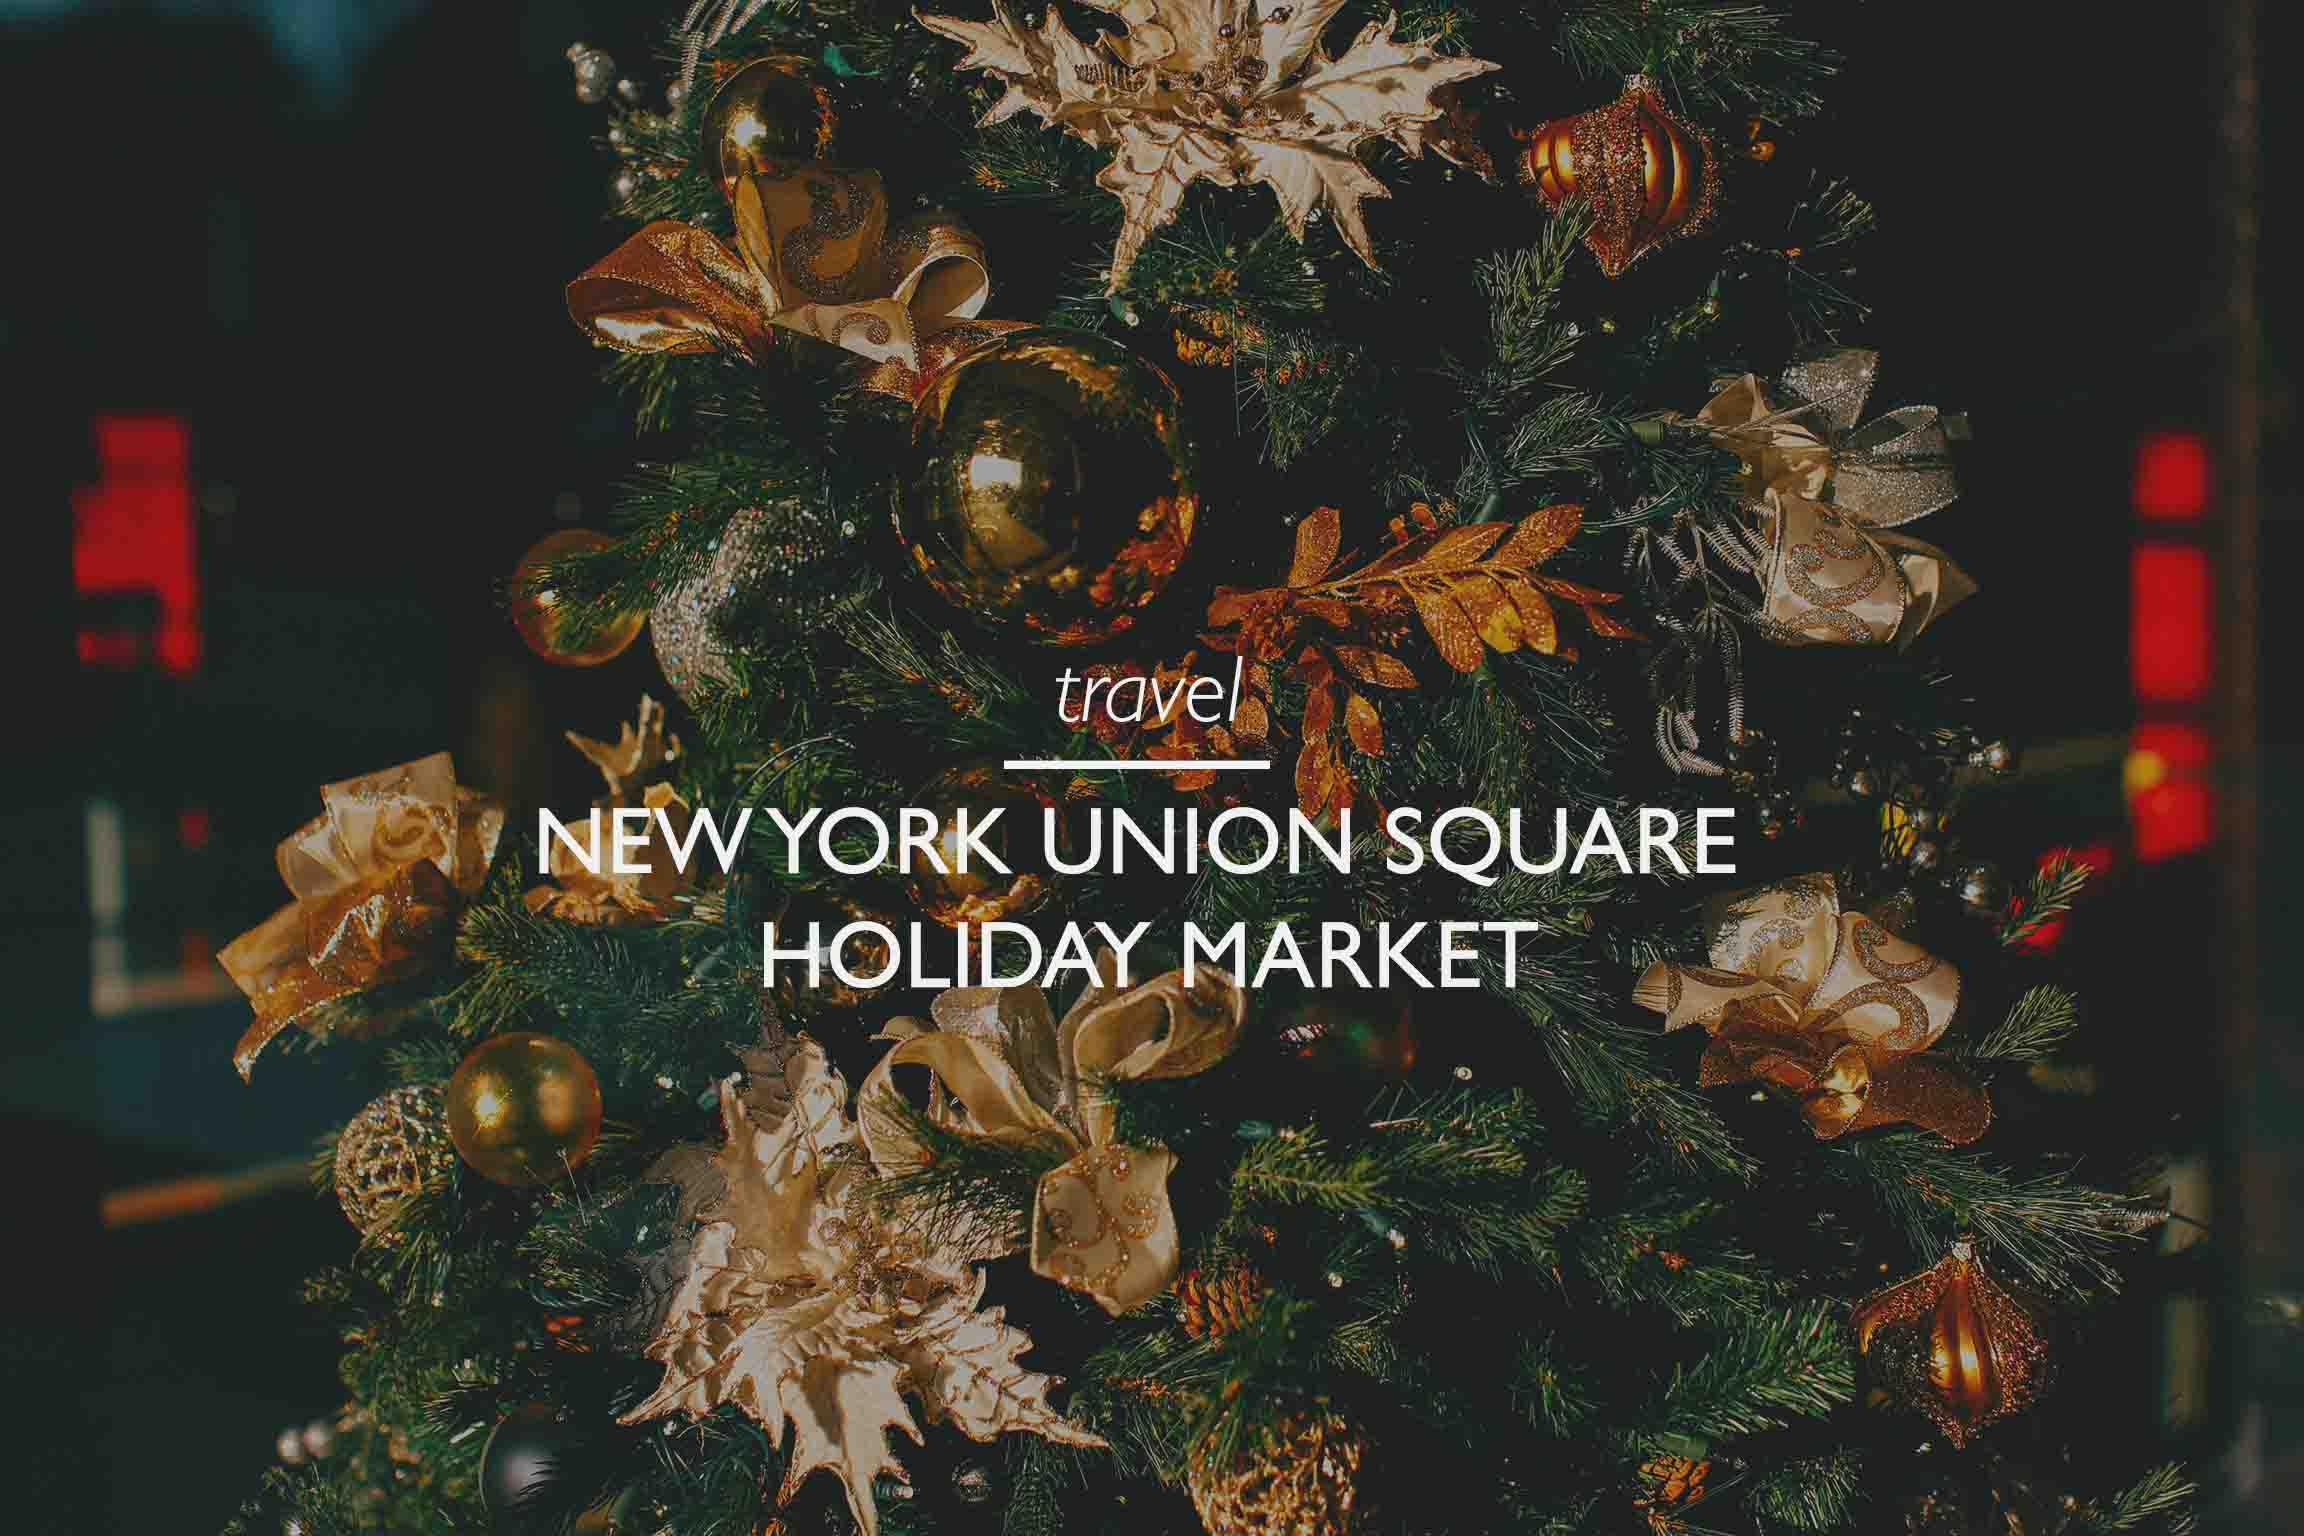 New York Holiday Market in Union Square